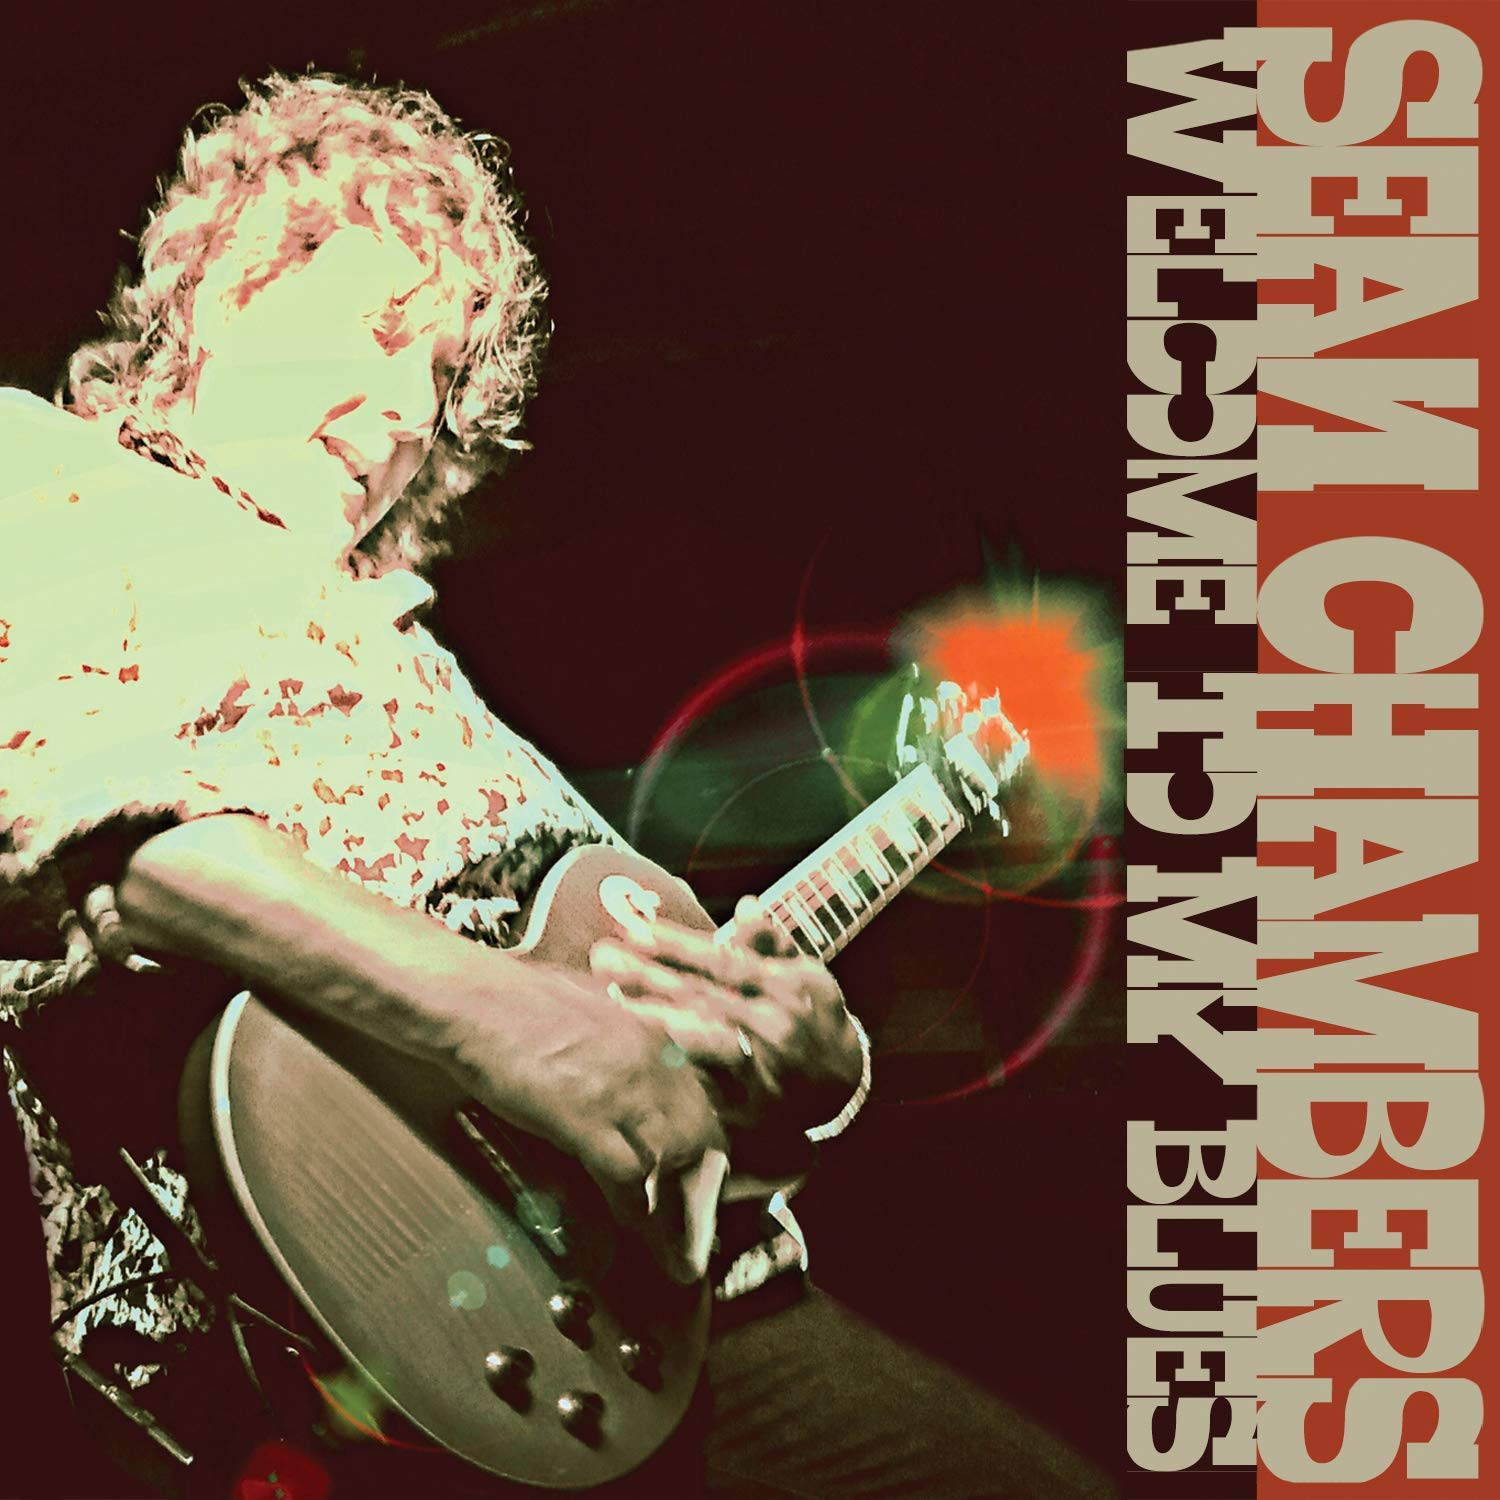 sean-chambers-welcome-to-my-blues